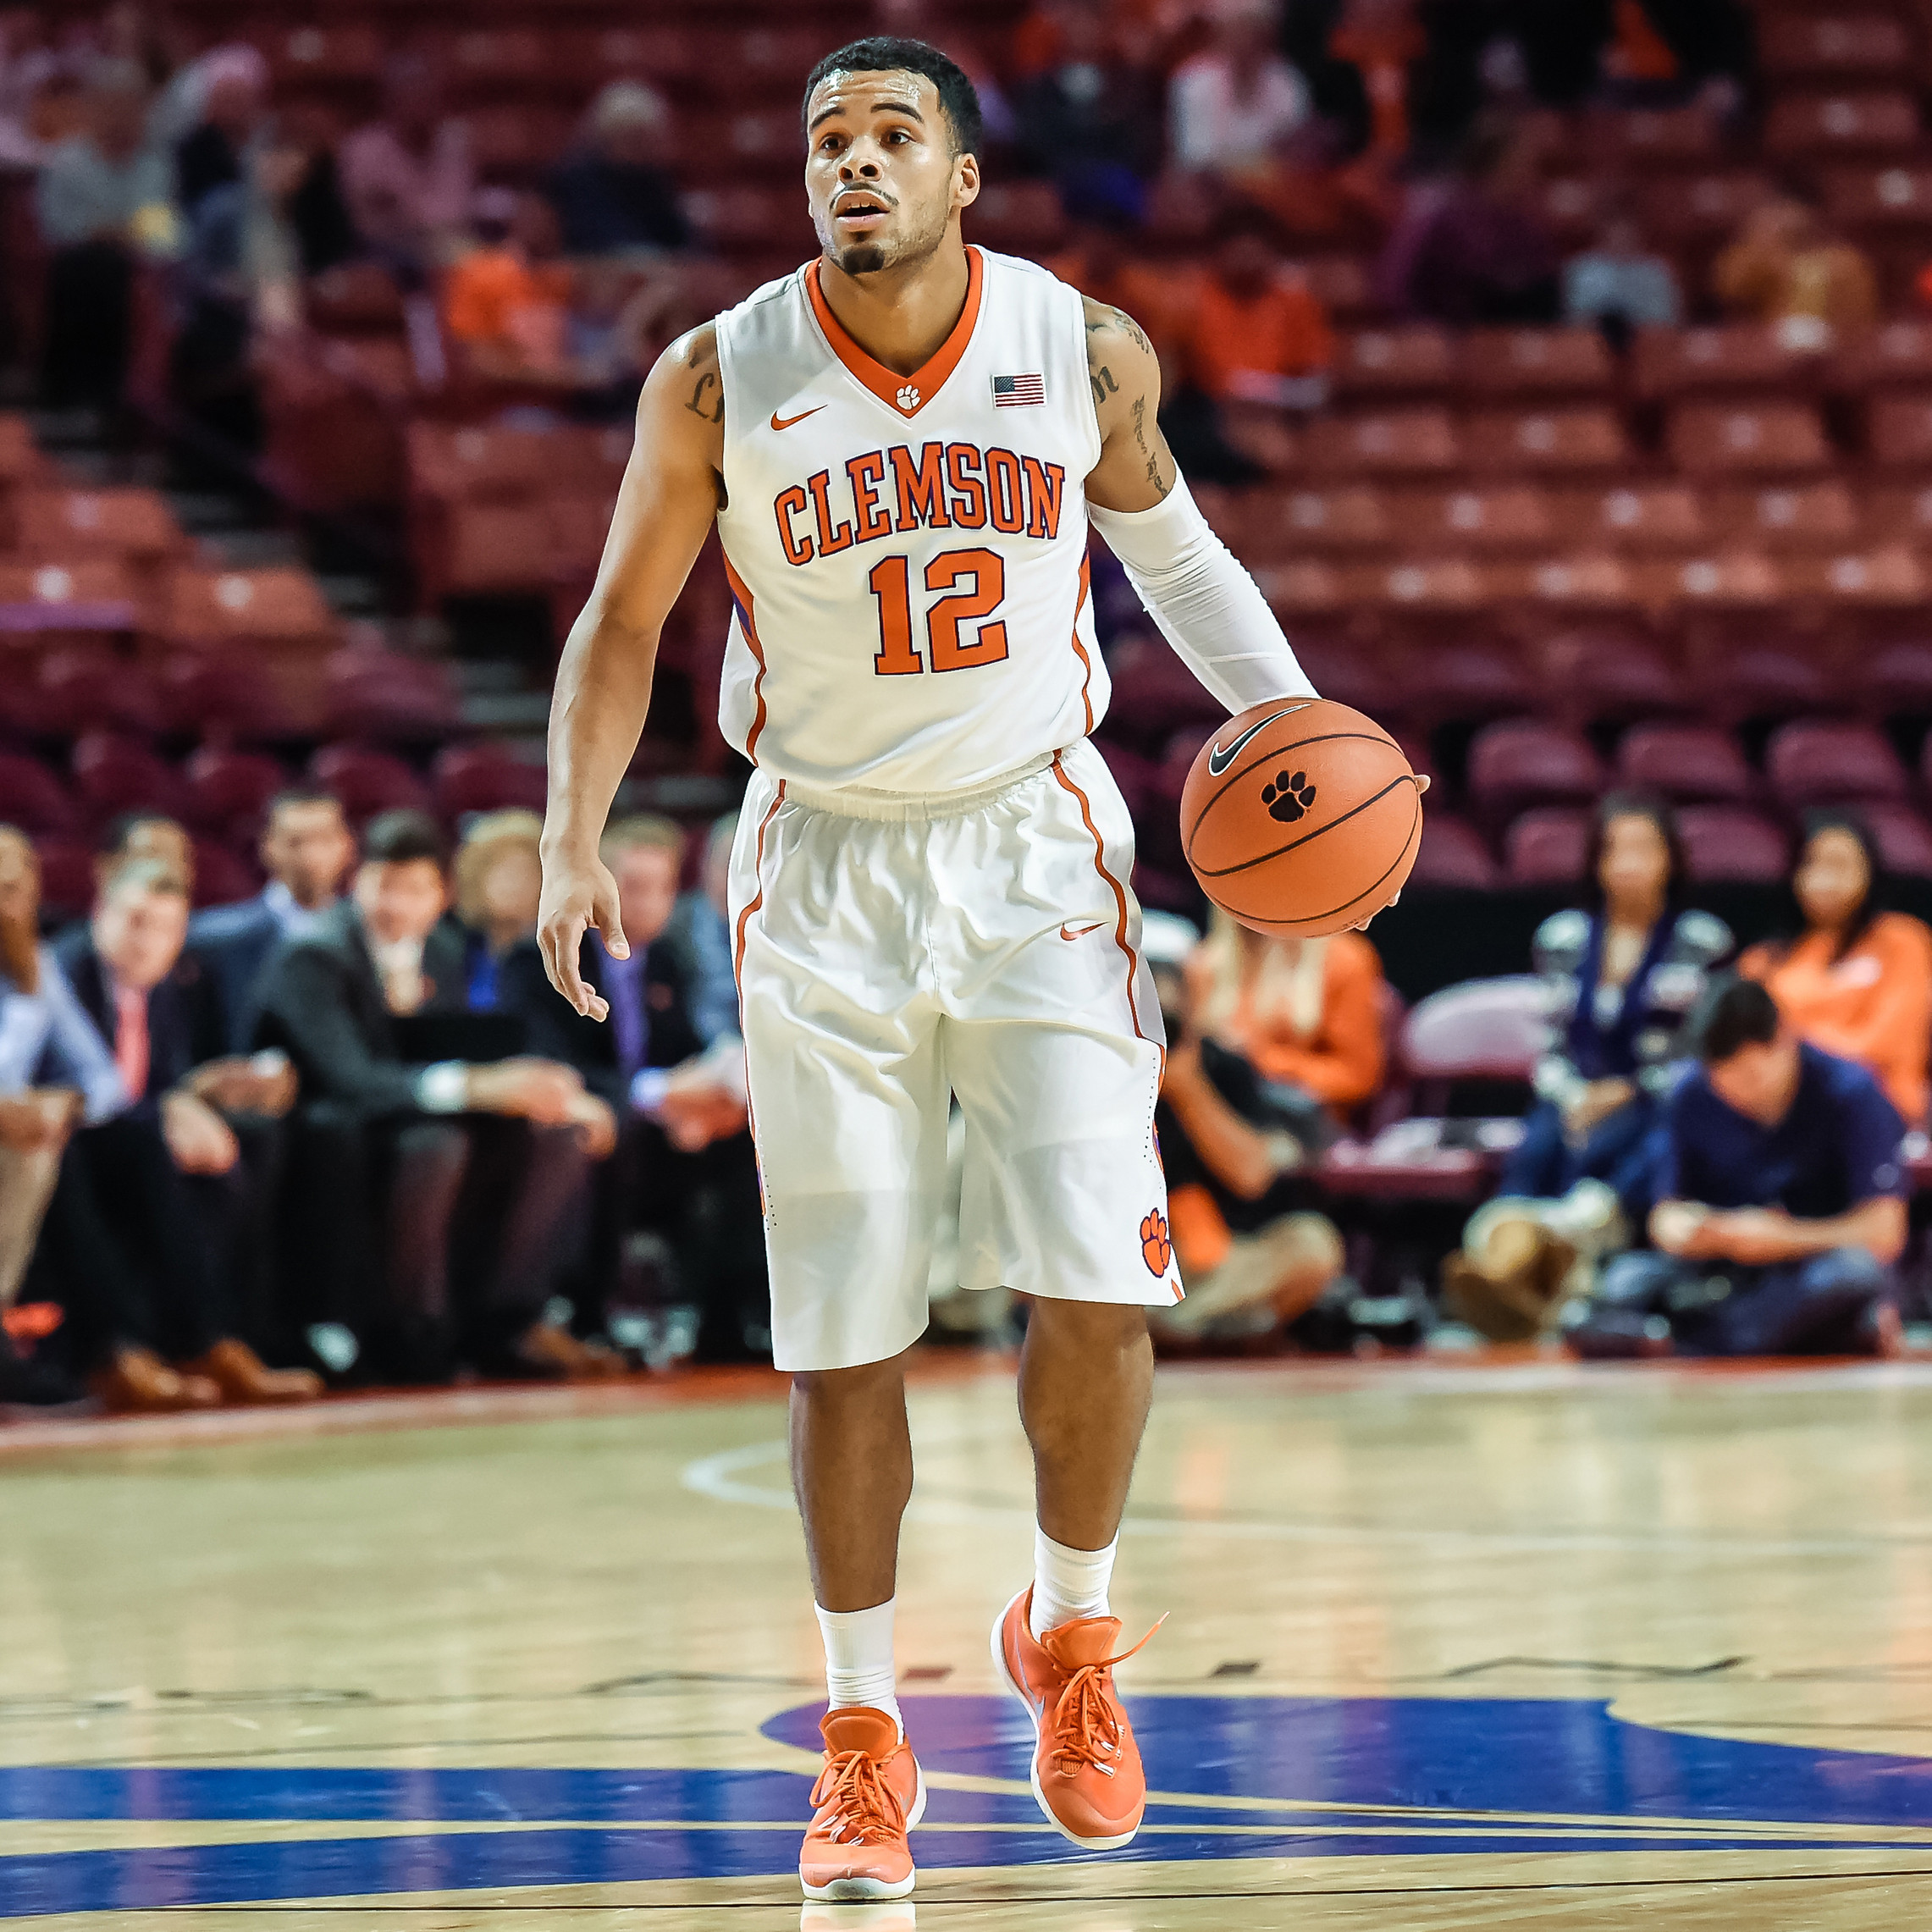 Tigers Fall to UMass in Las Vegas